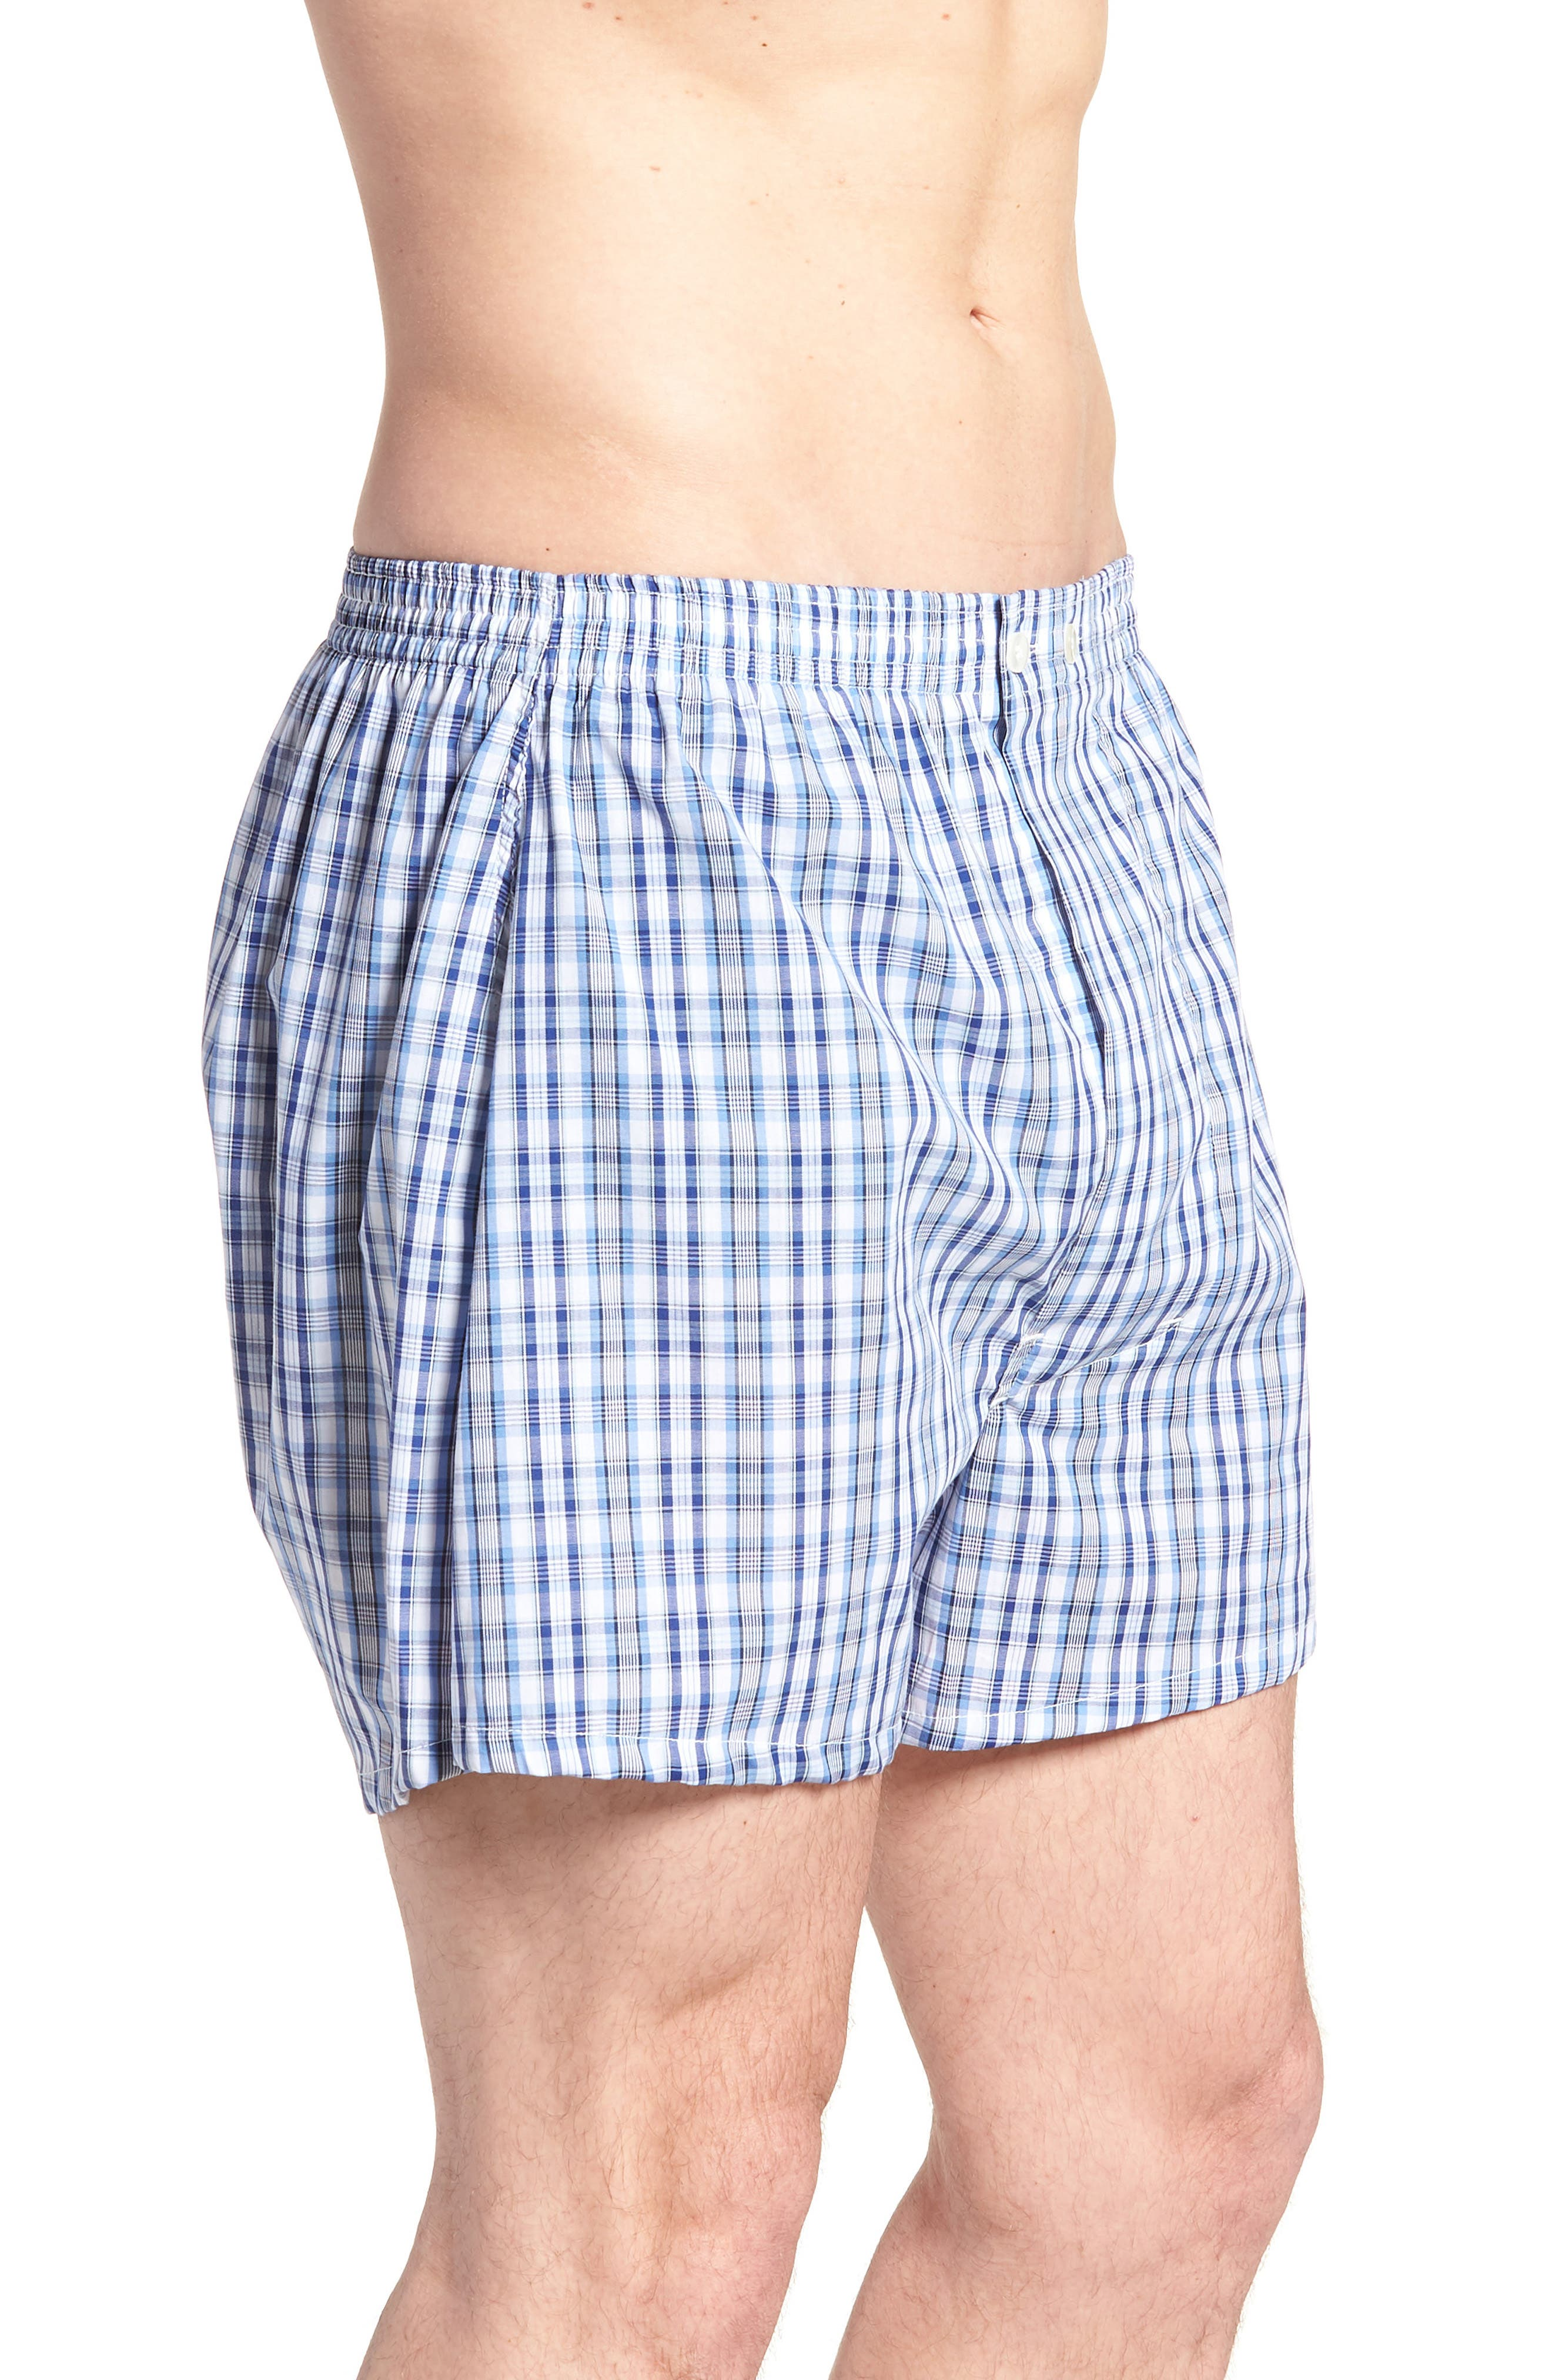 3-Pack Classic Fit Boxers,                             Alternate thumbnail 4, color,                             BLUE DAZZLE SOLID- PLAID PACK